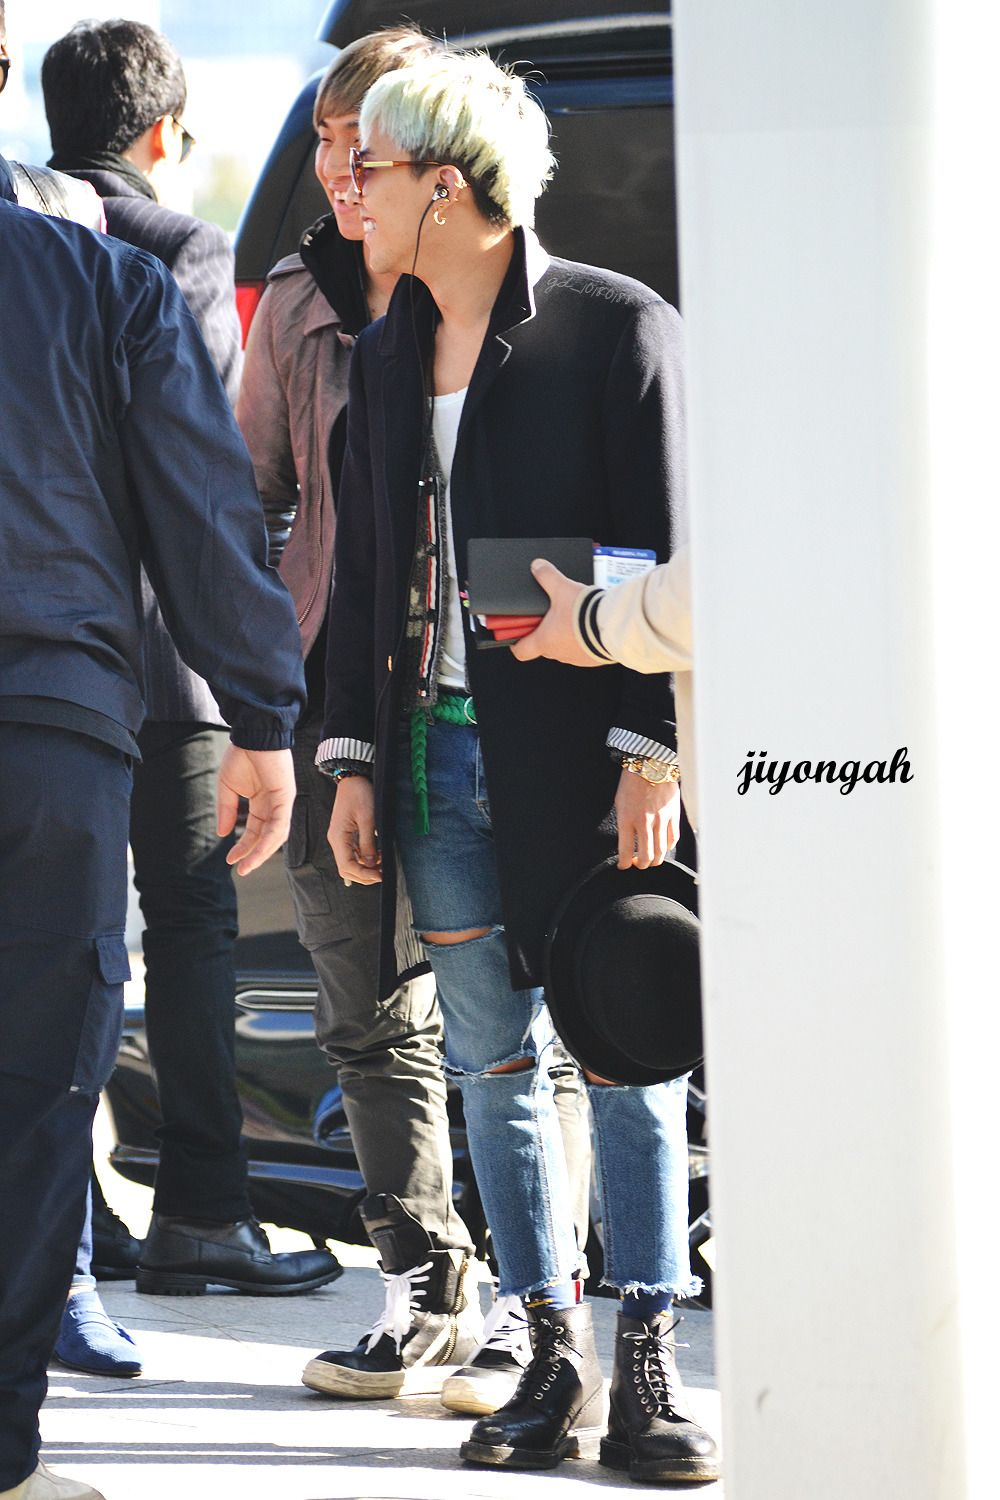 Icn This Is Combo Gd Thom Browne Coat X Thom Browne Cardigan